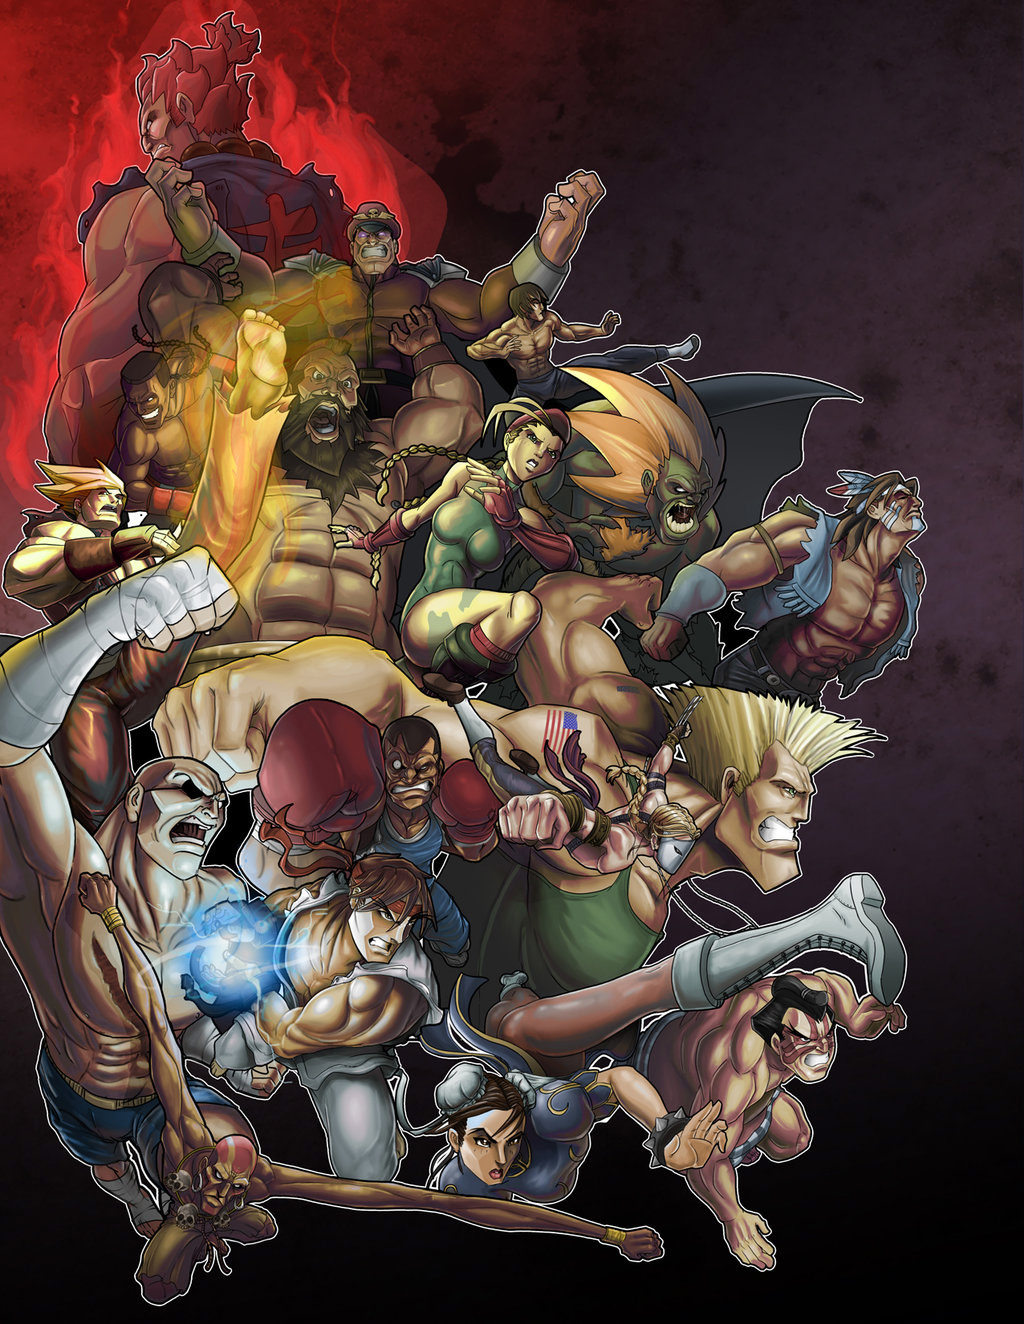 Fighting game related artwork image #7